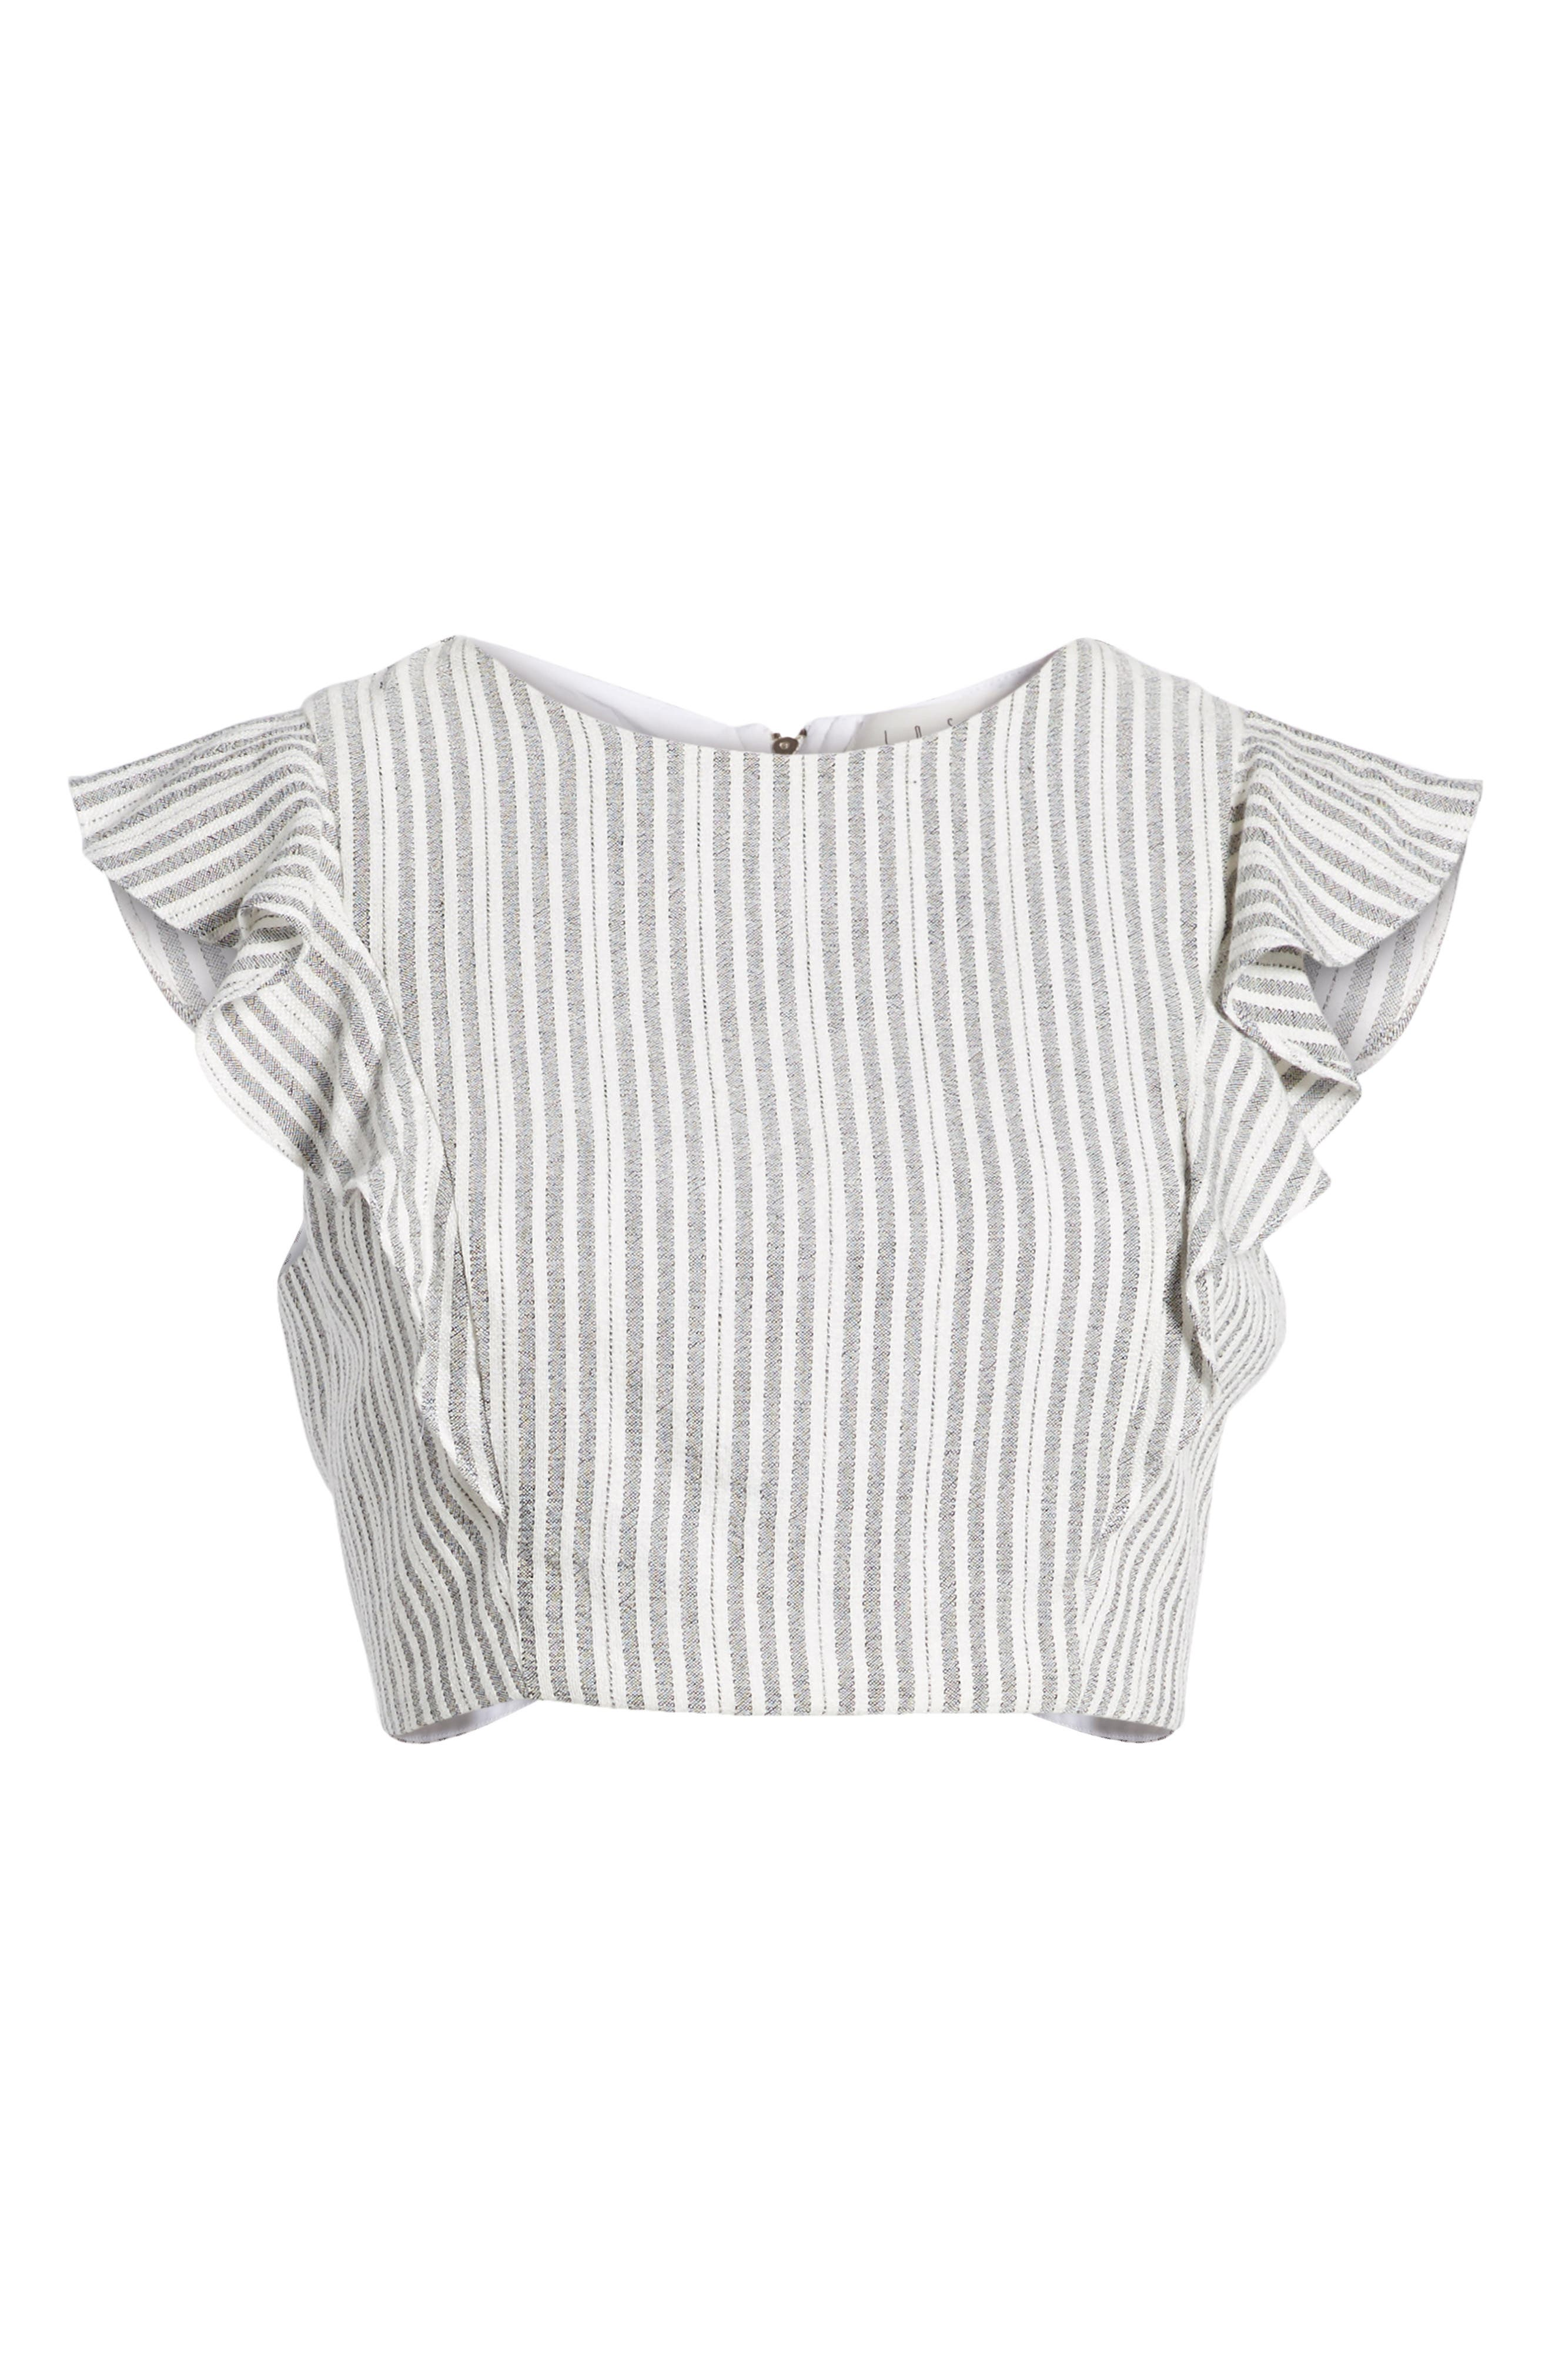 Vacay Flutter Sleeve Crop Top,                             Alternate thumbnail 8, color,                             Grey